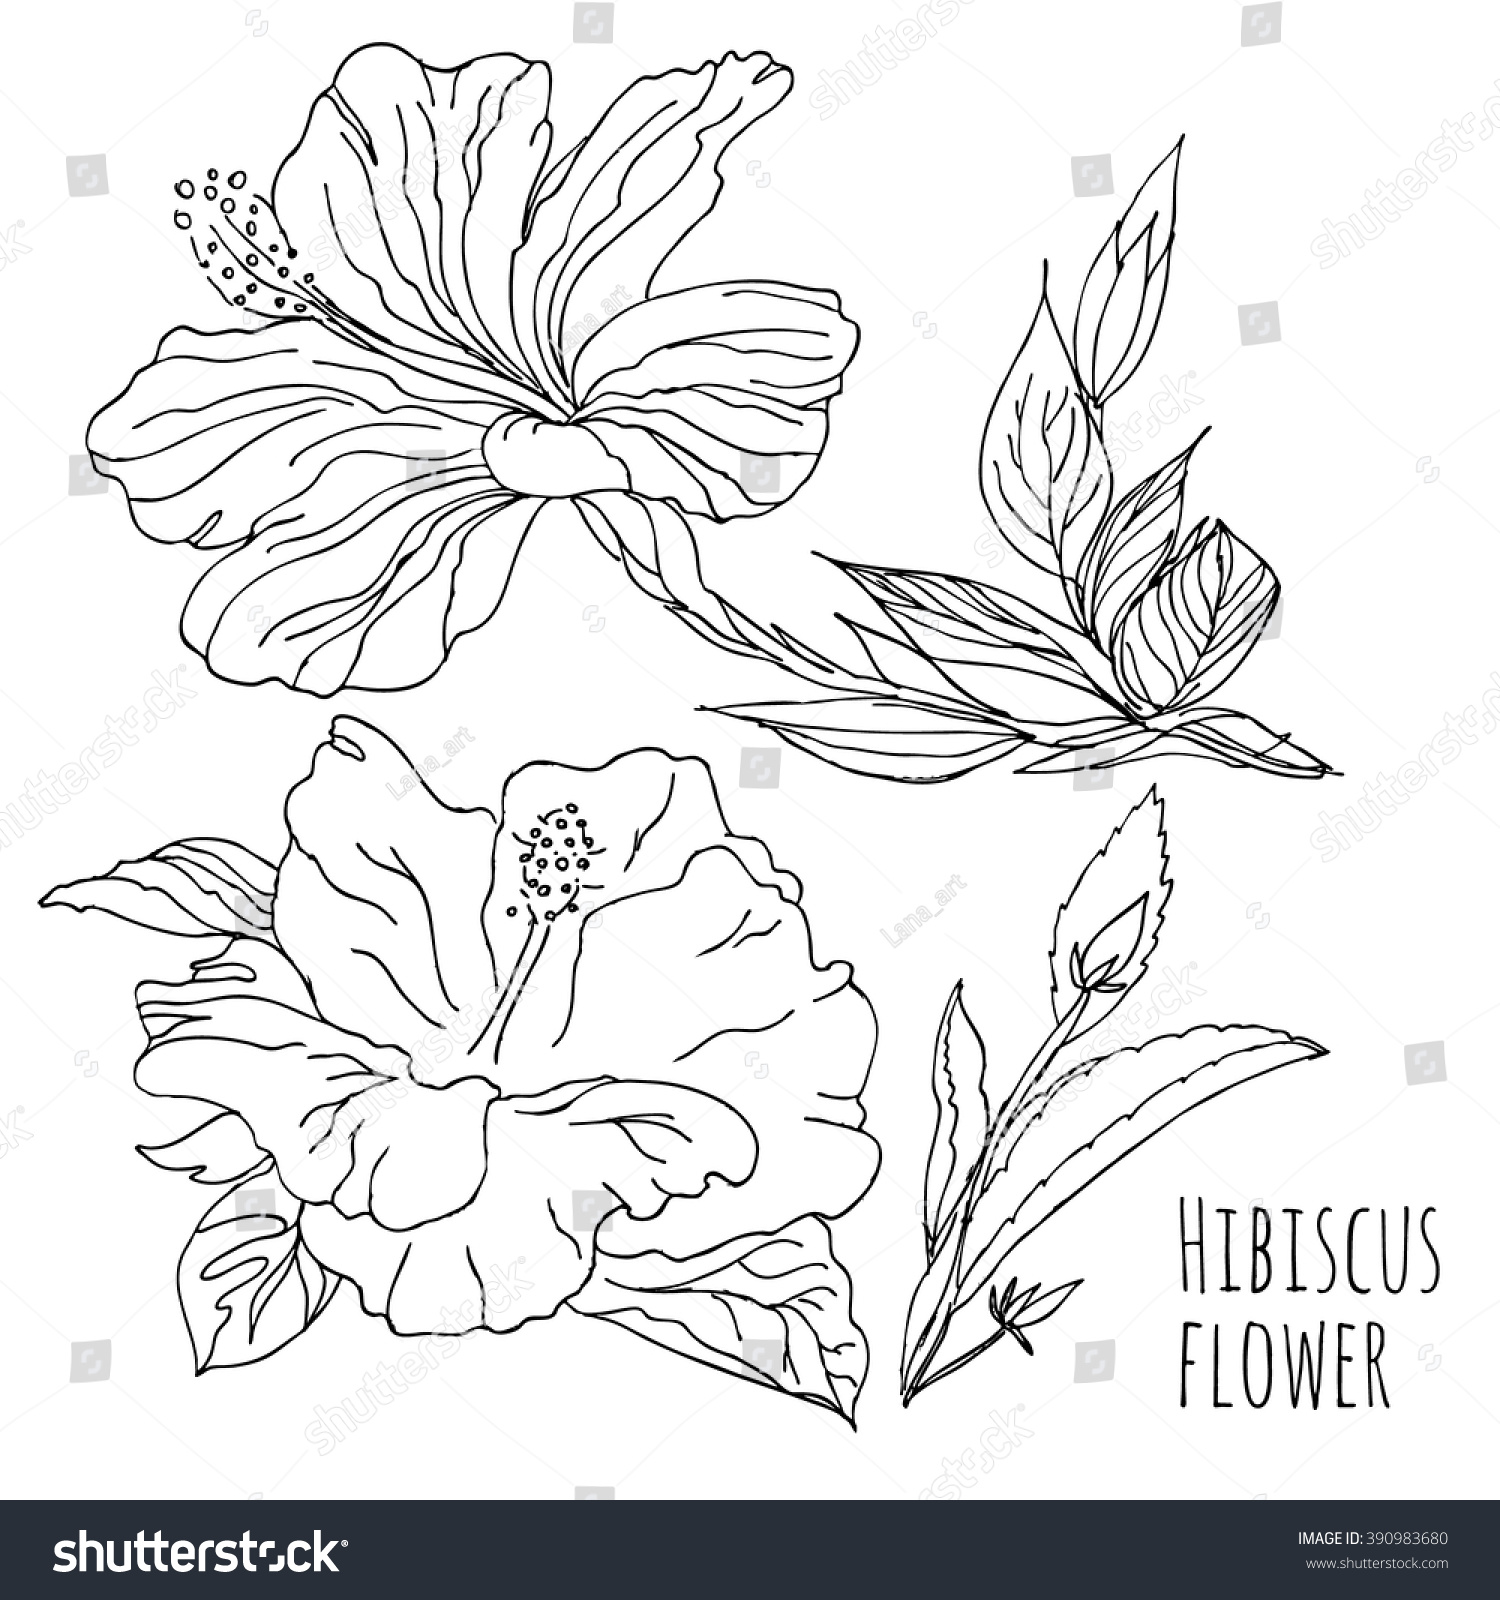 Hibiscus Flower Linear Hand Drawing Vector Black Stock Vector